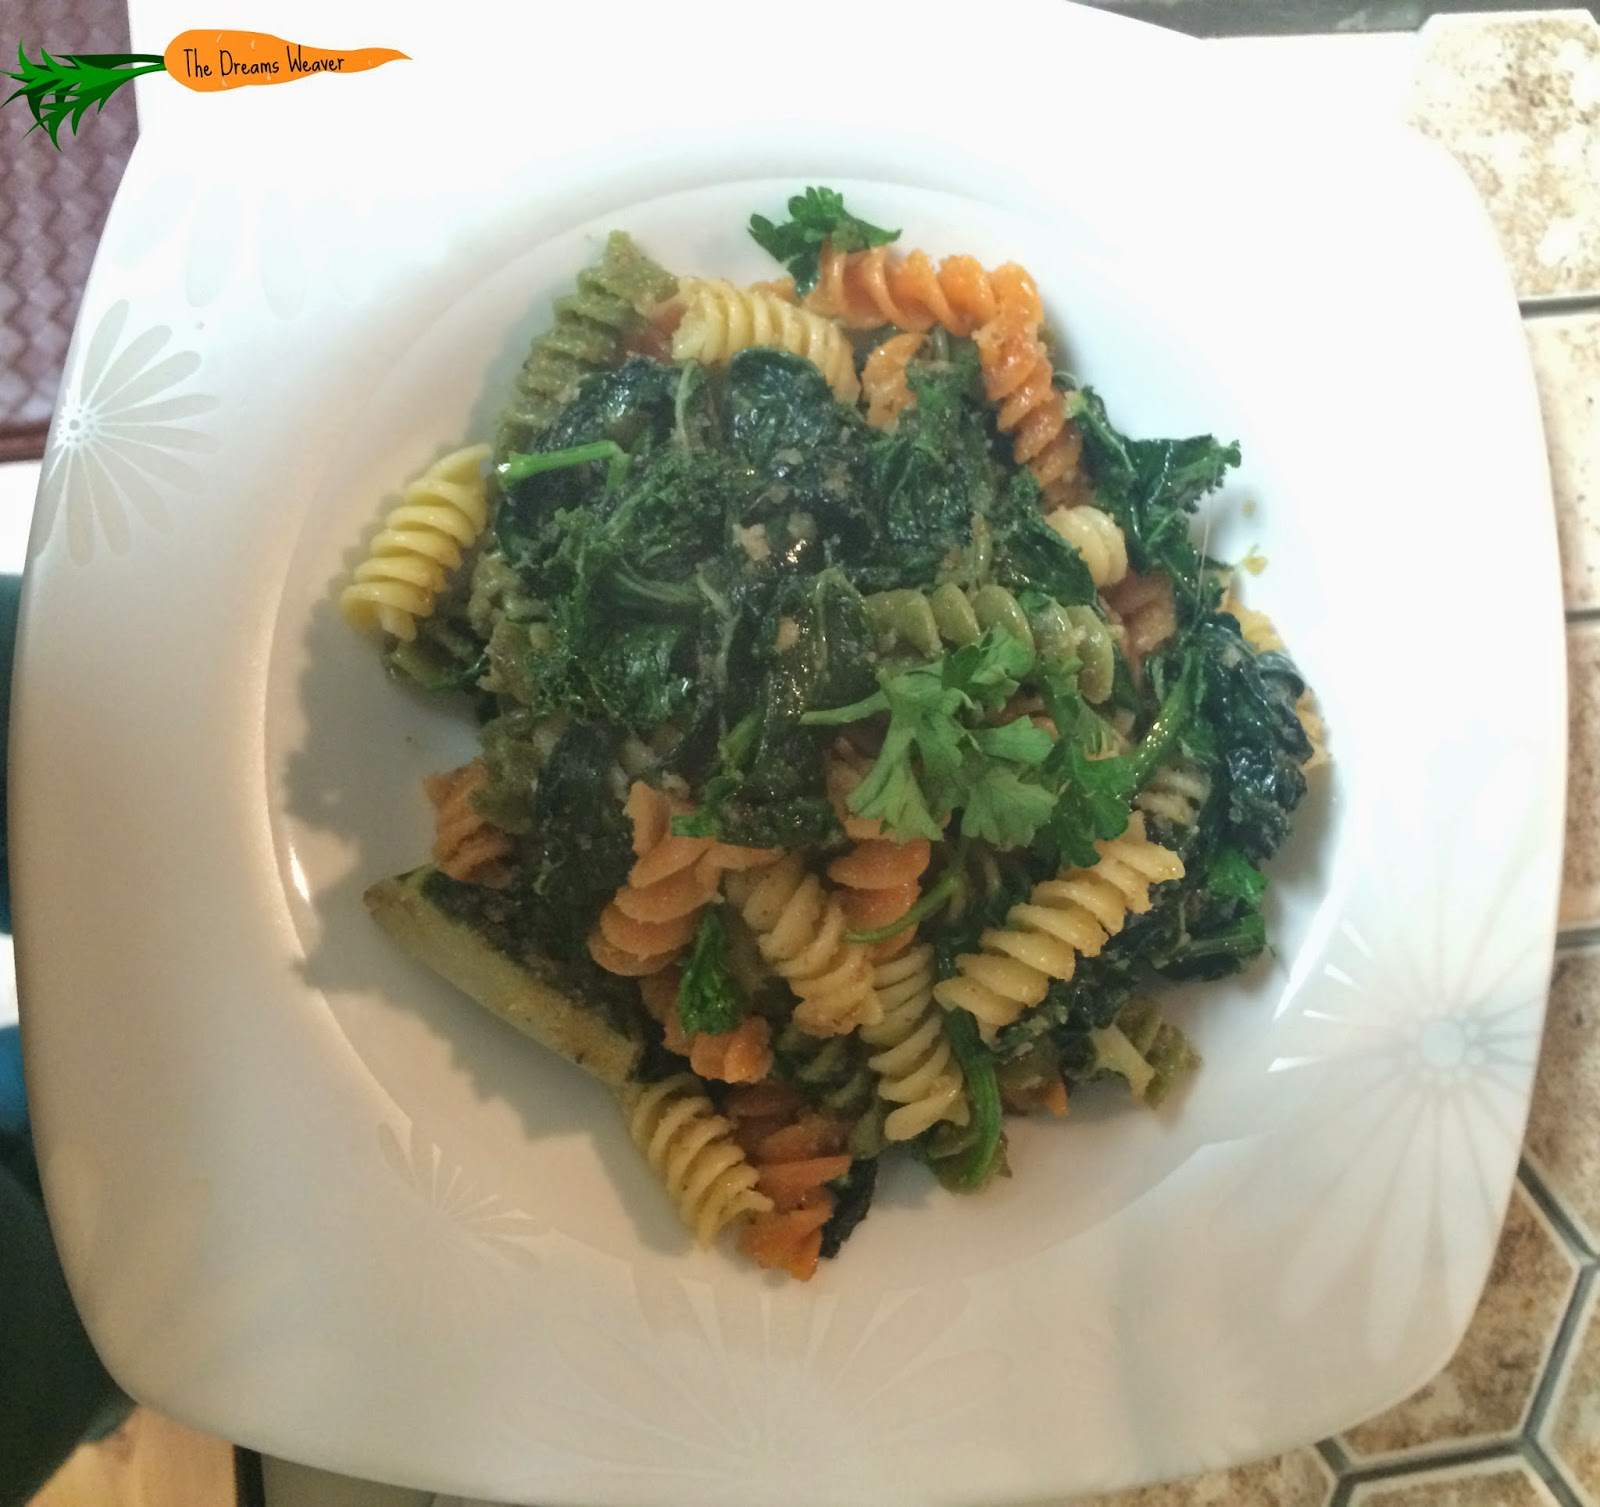 Glorious Greens Pasta~ The Dreams Weaver